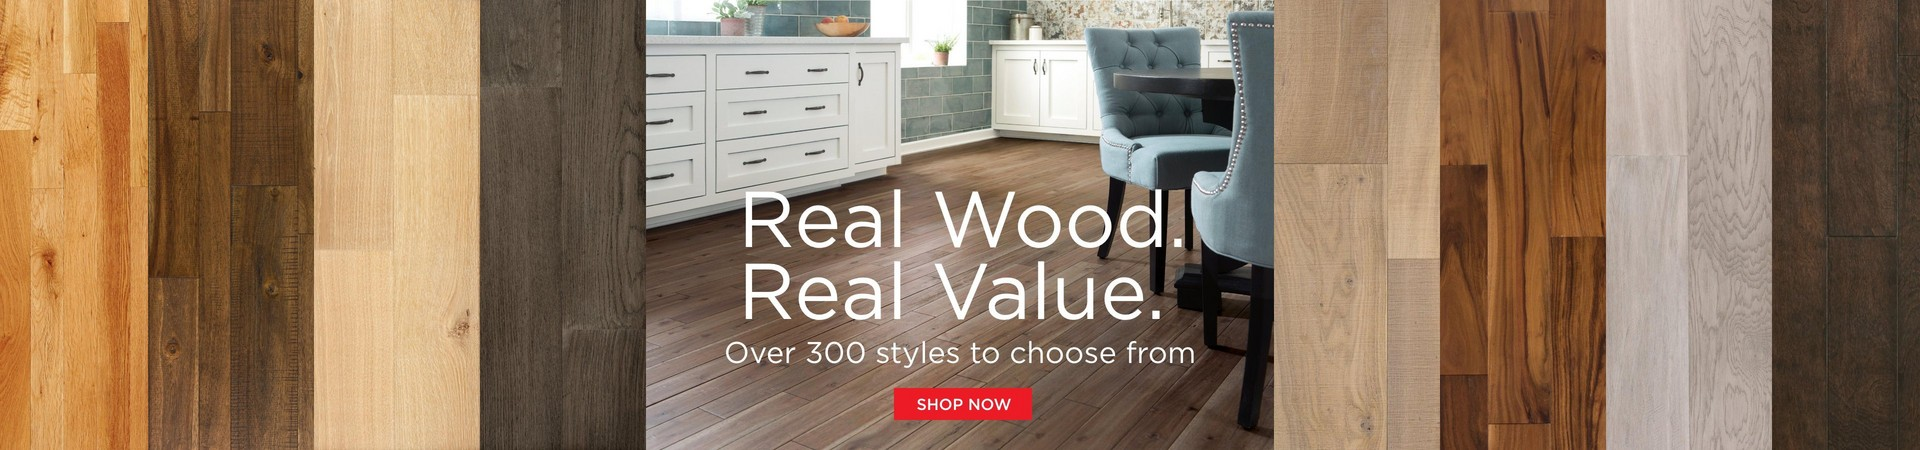 Real Wood Real Value